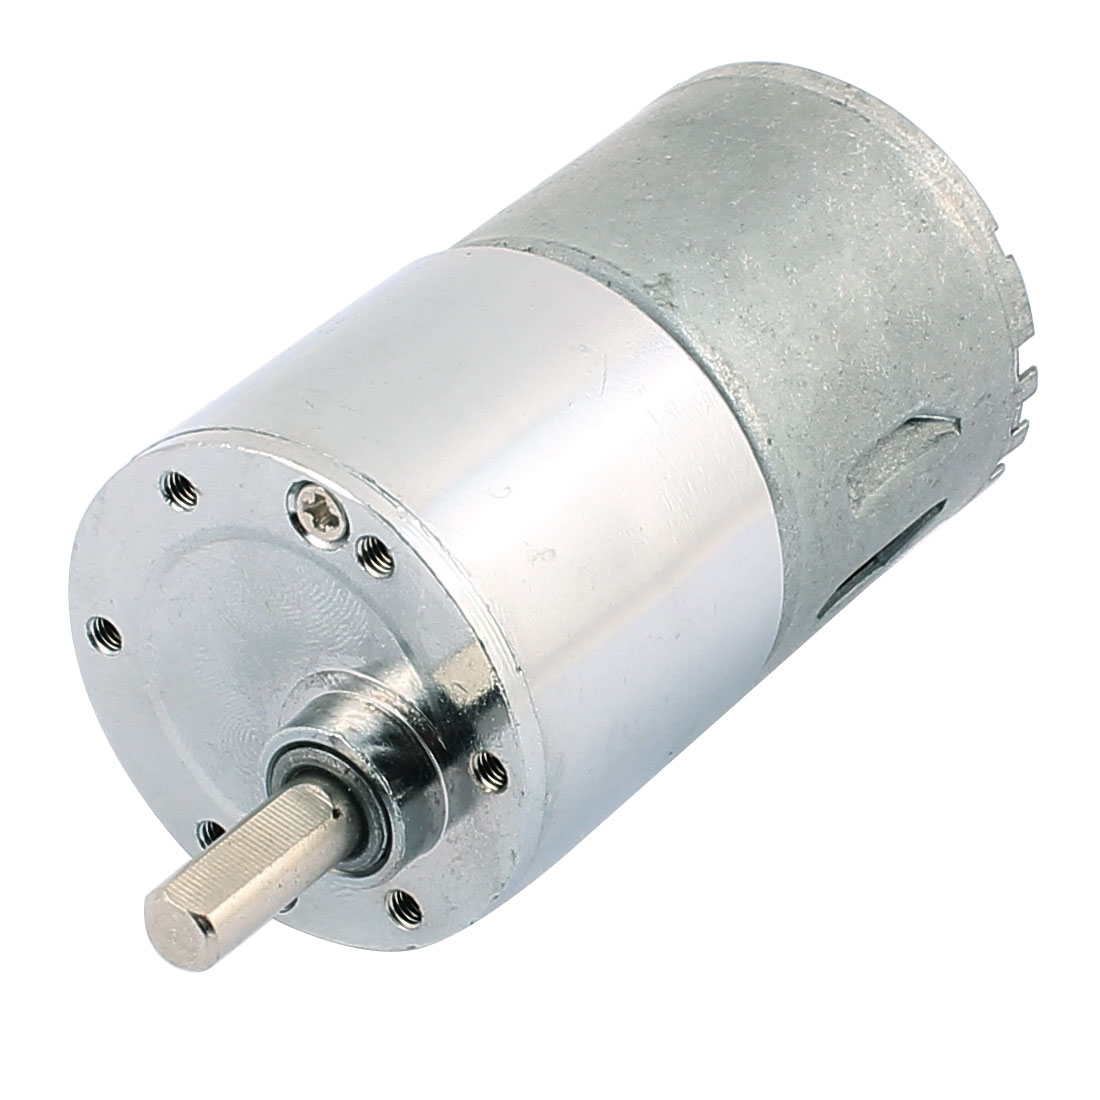 High Torque Low Speed Solder Cylindrical Reduction Gear Box Motor DC 24V 20RPM